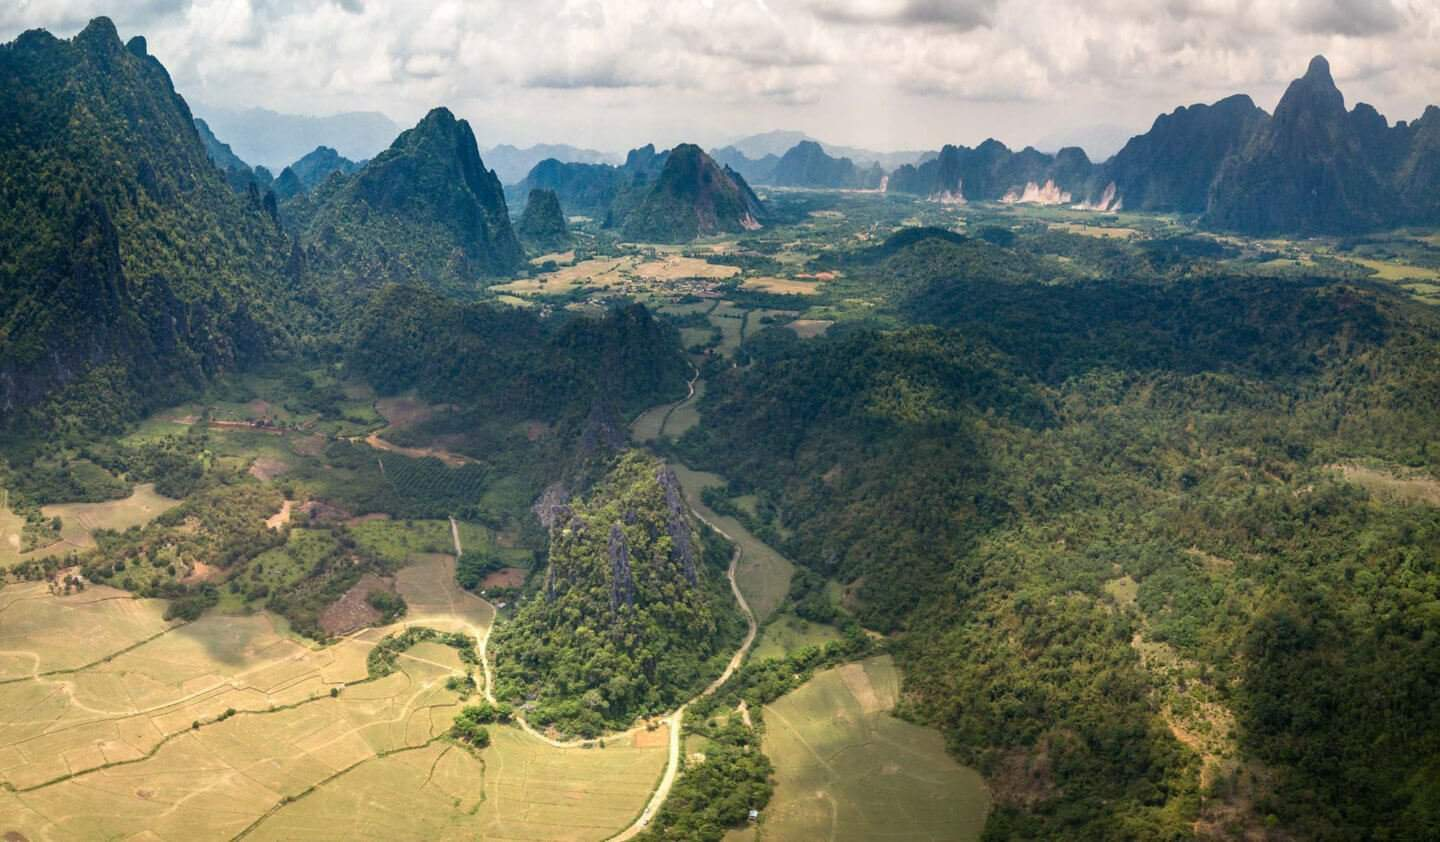 Northern Laos Itinerary: Travel Guide for Northern Laos